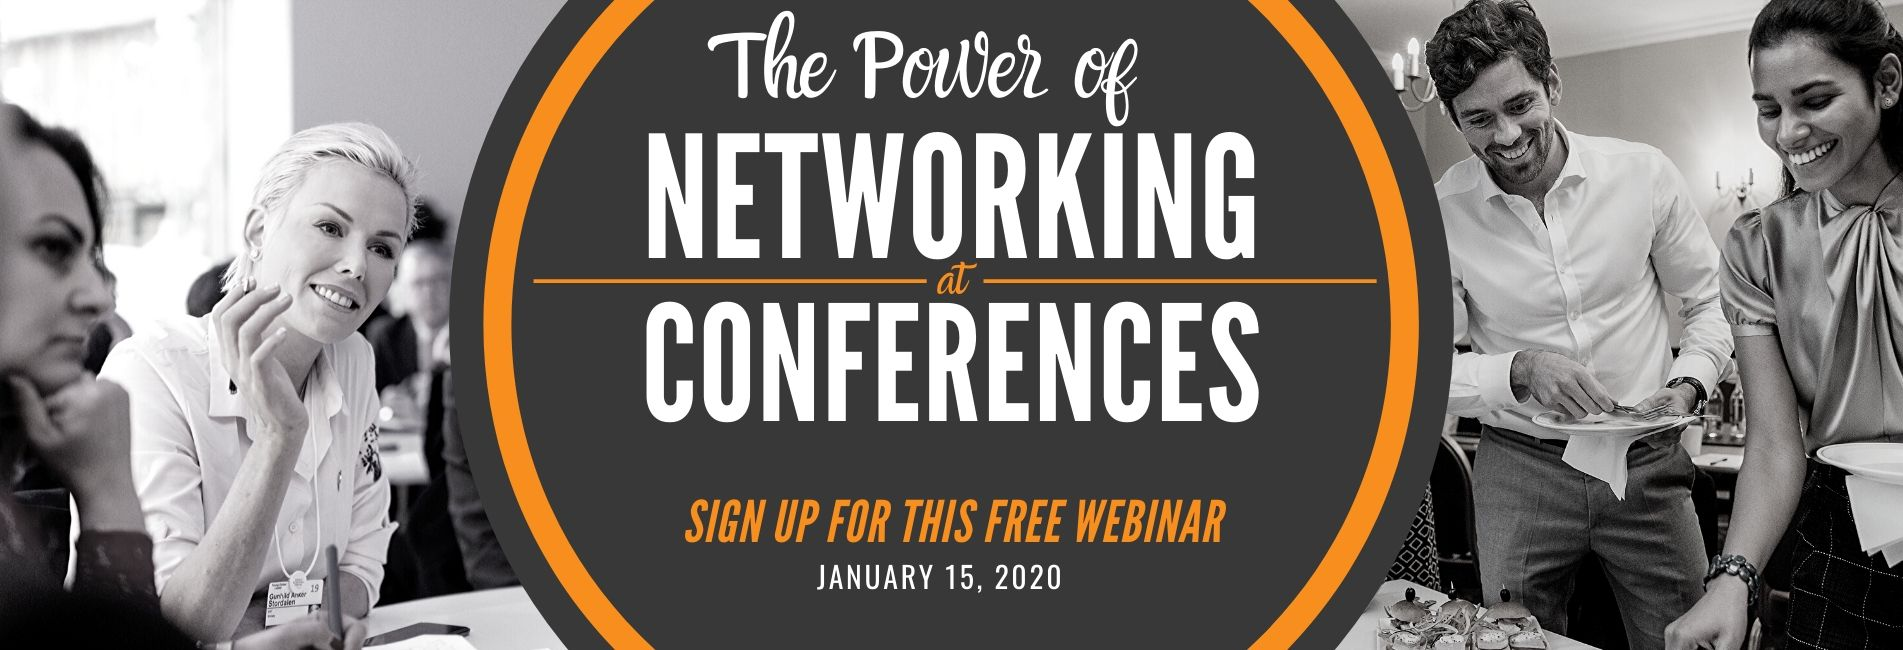 Vet Education - Networking at Conferences in 2020